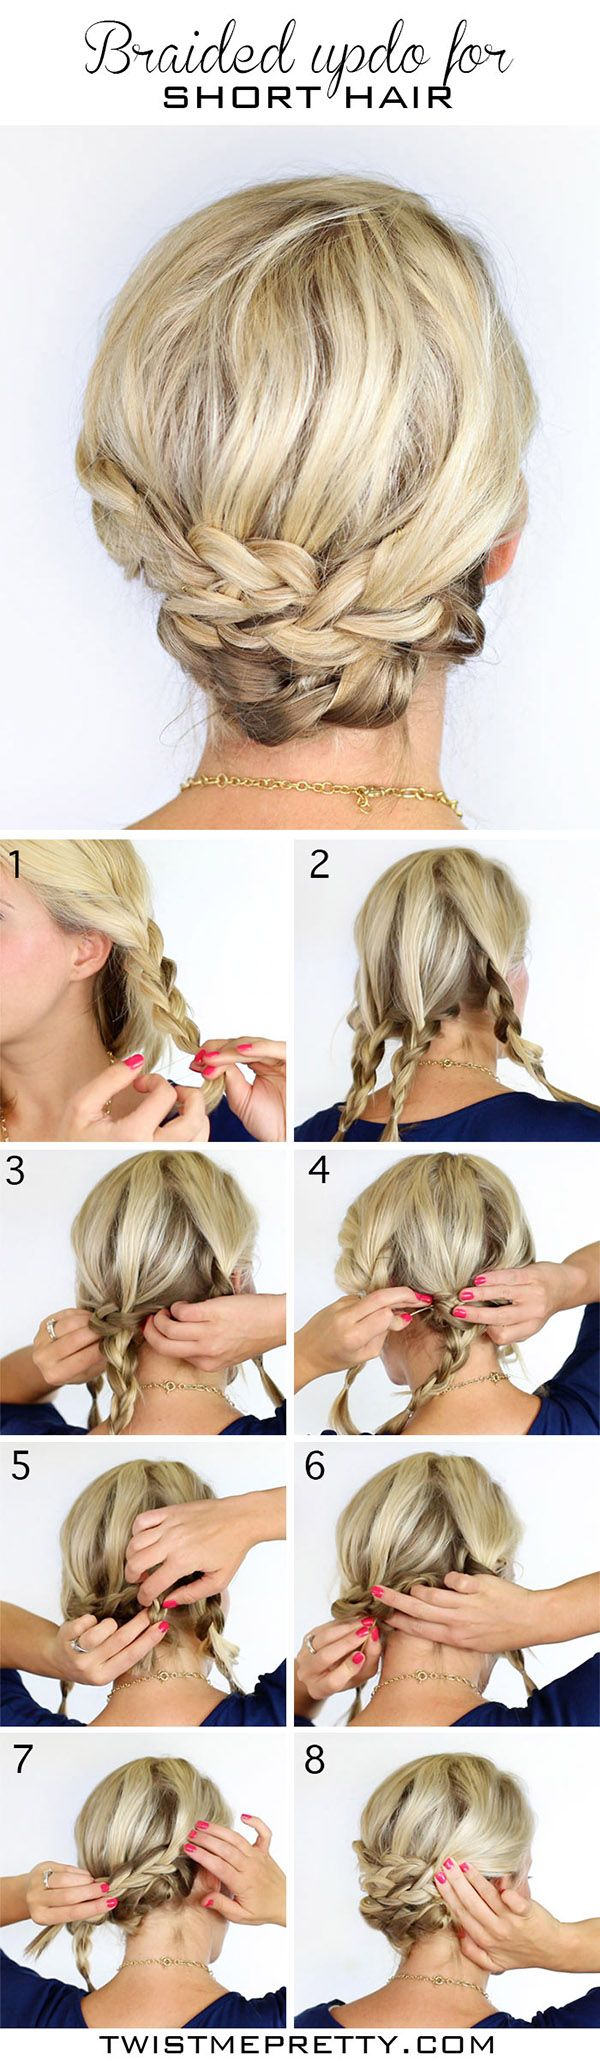 diy braided updo wedding hairstyles for short hairs (Wedding Hair Diy)